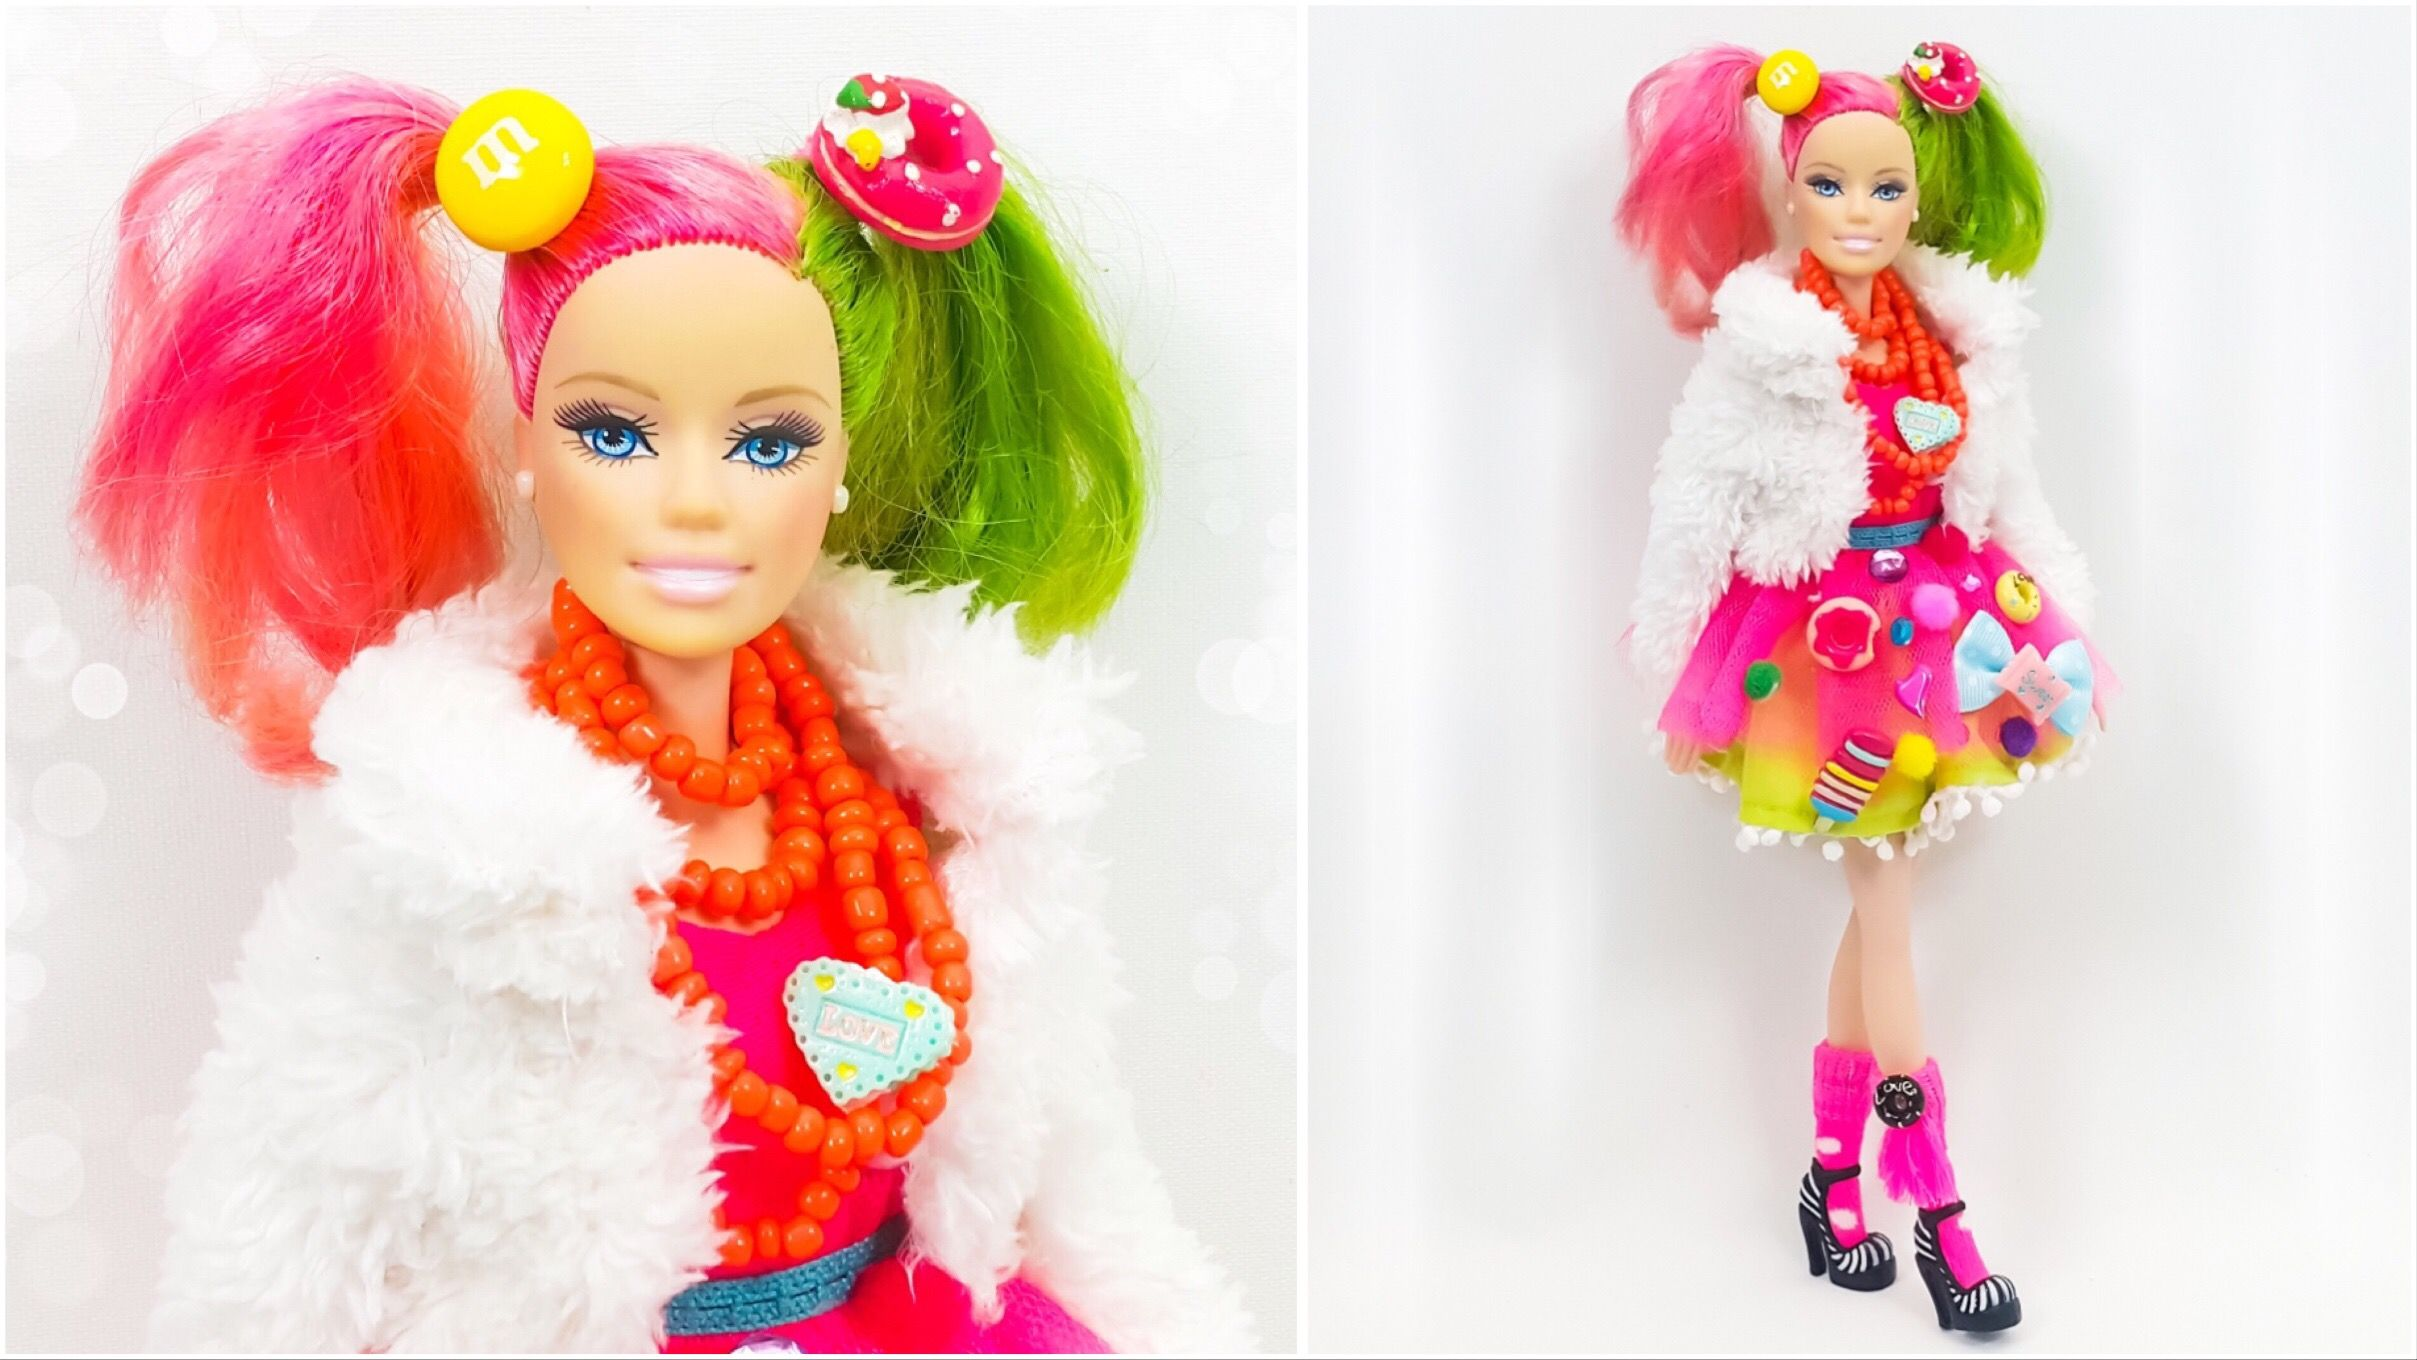 Candy Barbie Clothes Diy Sweet Doll Hairstyle Colouring 바비 バービー 服 Munecas Jogo Vetement العاب باربي Barbie Barbie Hairstyle Doll Hair